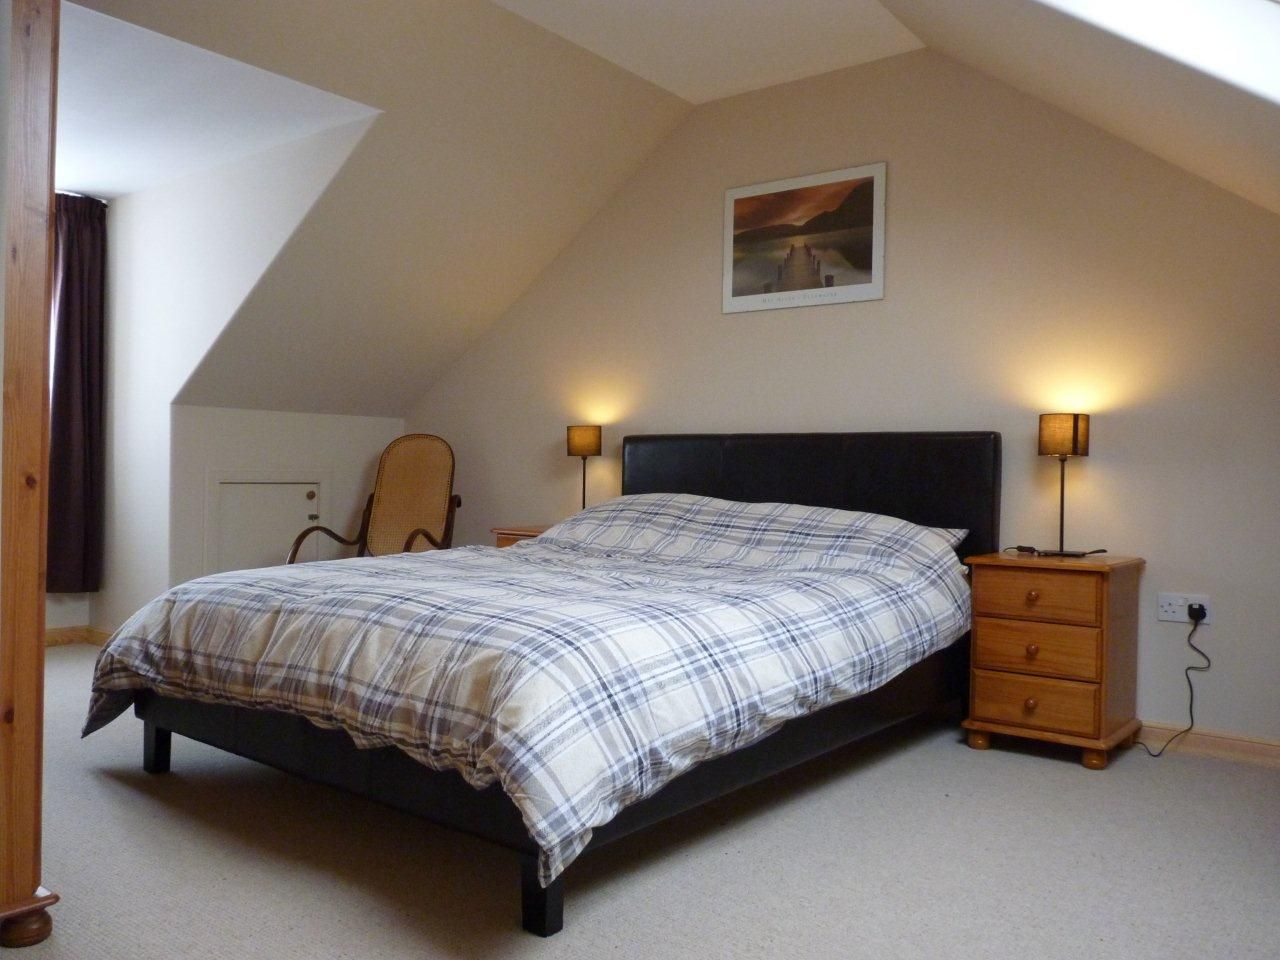 Built In Beds For Adults Rowlands Of Aviemore There Are 4 Bedrooms The Master